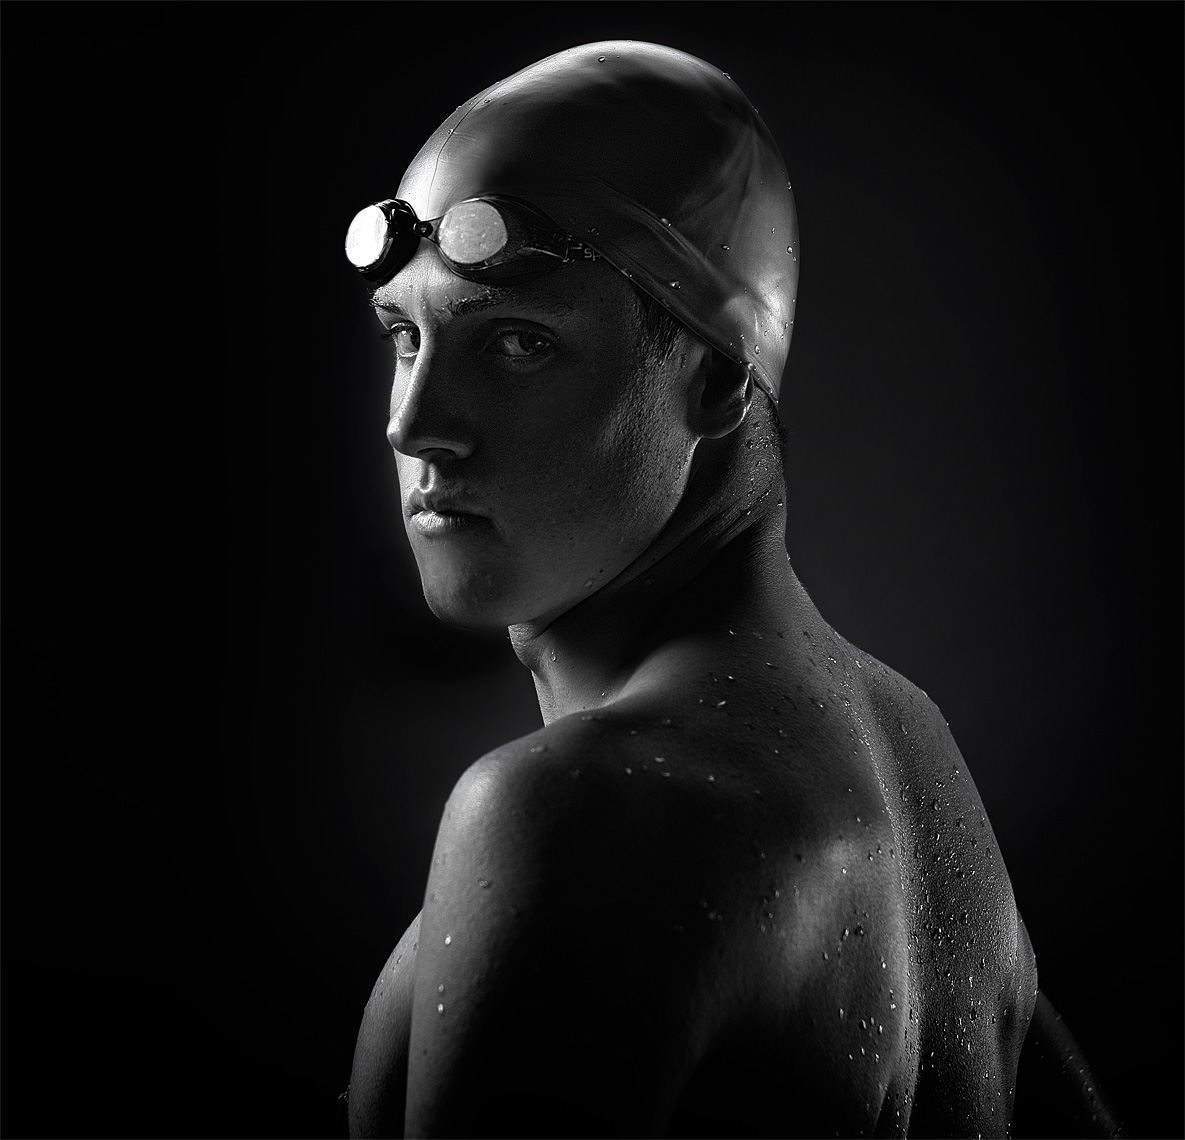 black-and-white-studio-sports-portrait-for-espn-rise-swimmer-ann-arbor-editorial-photographer-scott-stewart